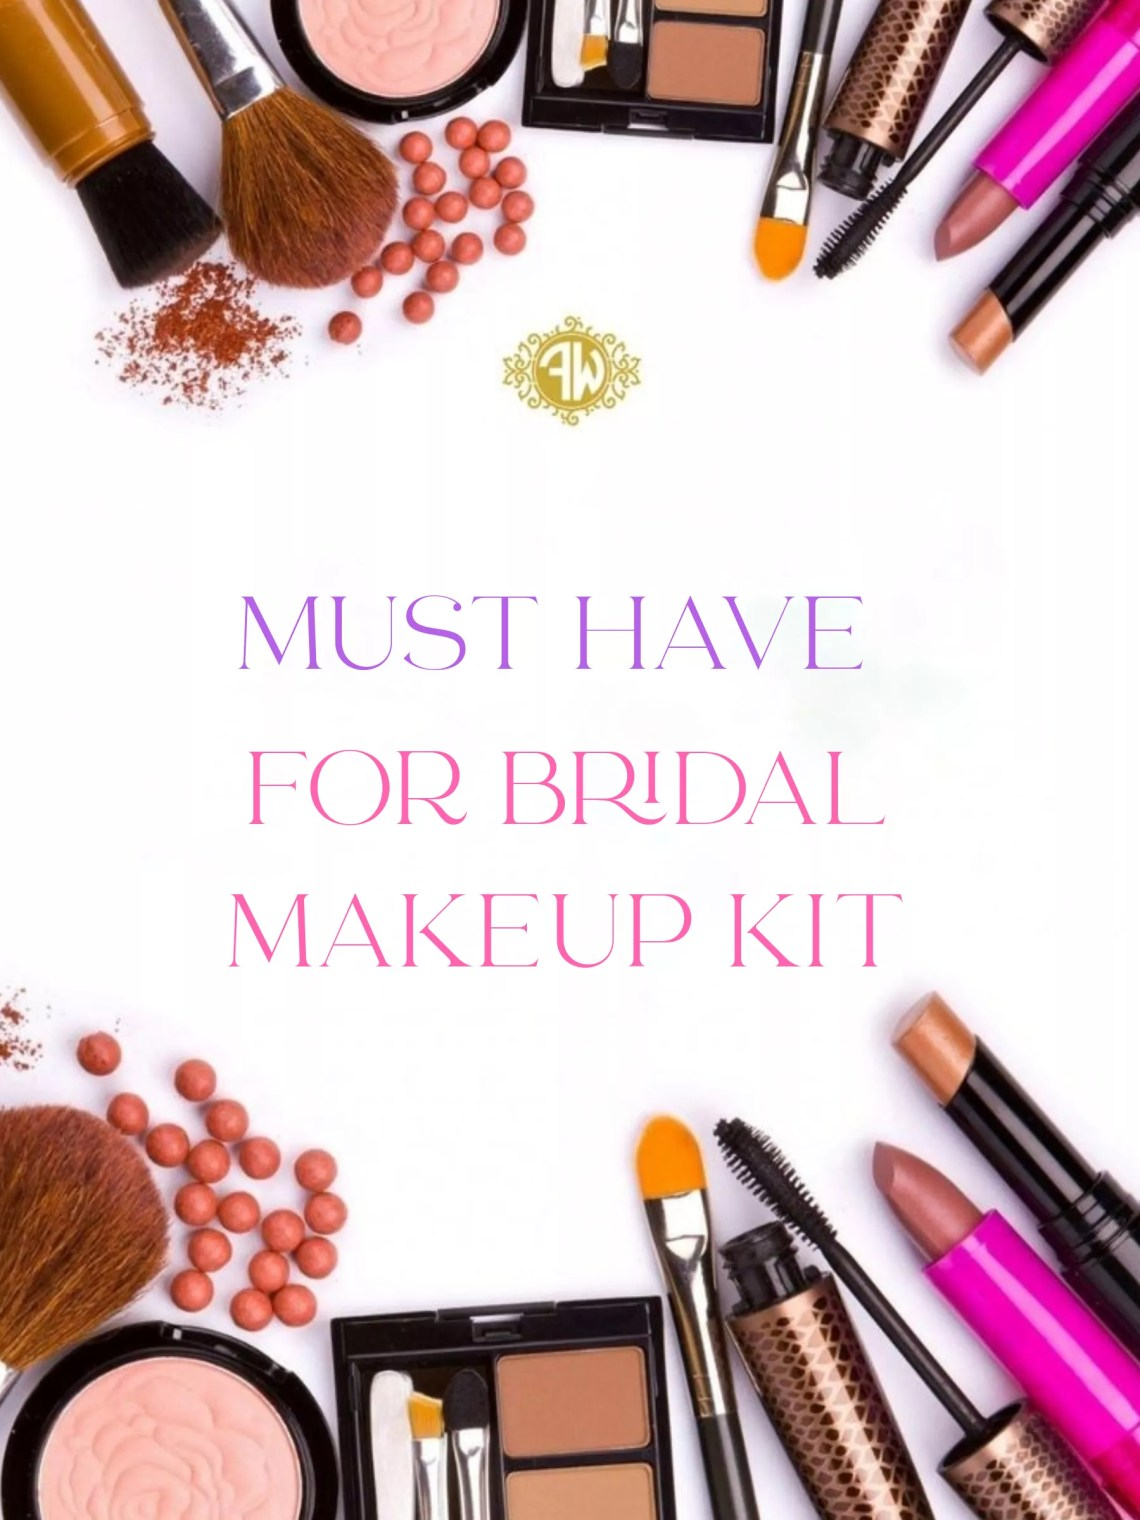 Must have for Bridal Makeup Kit